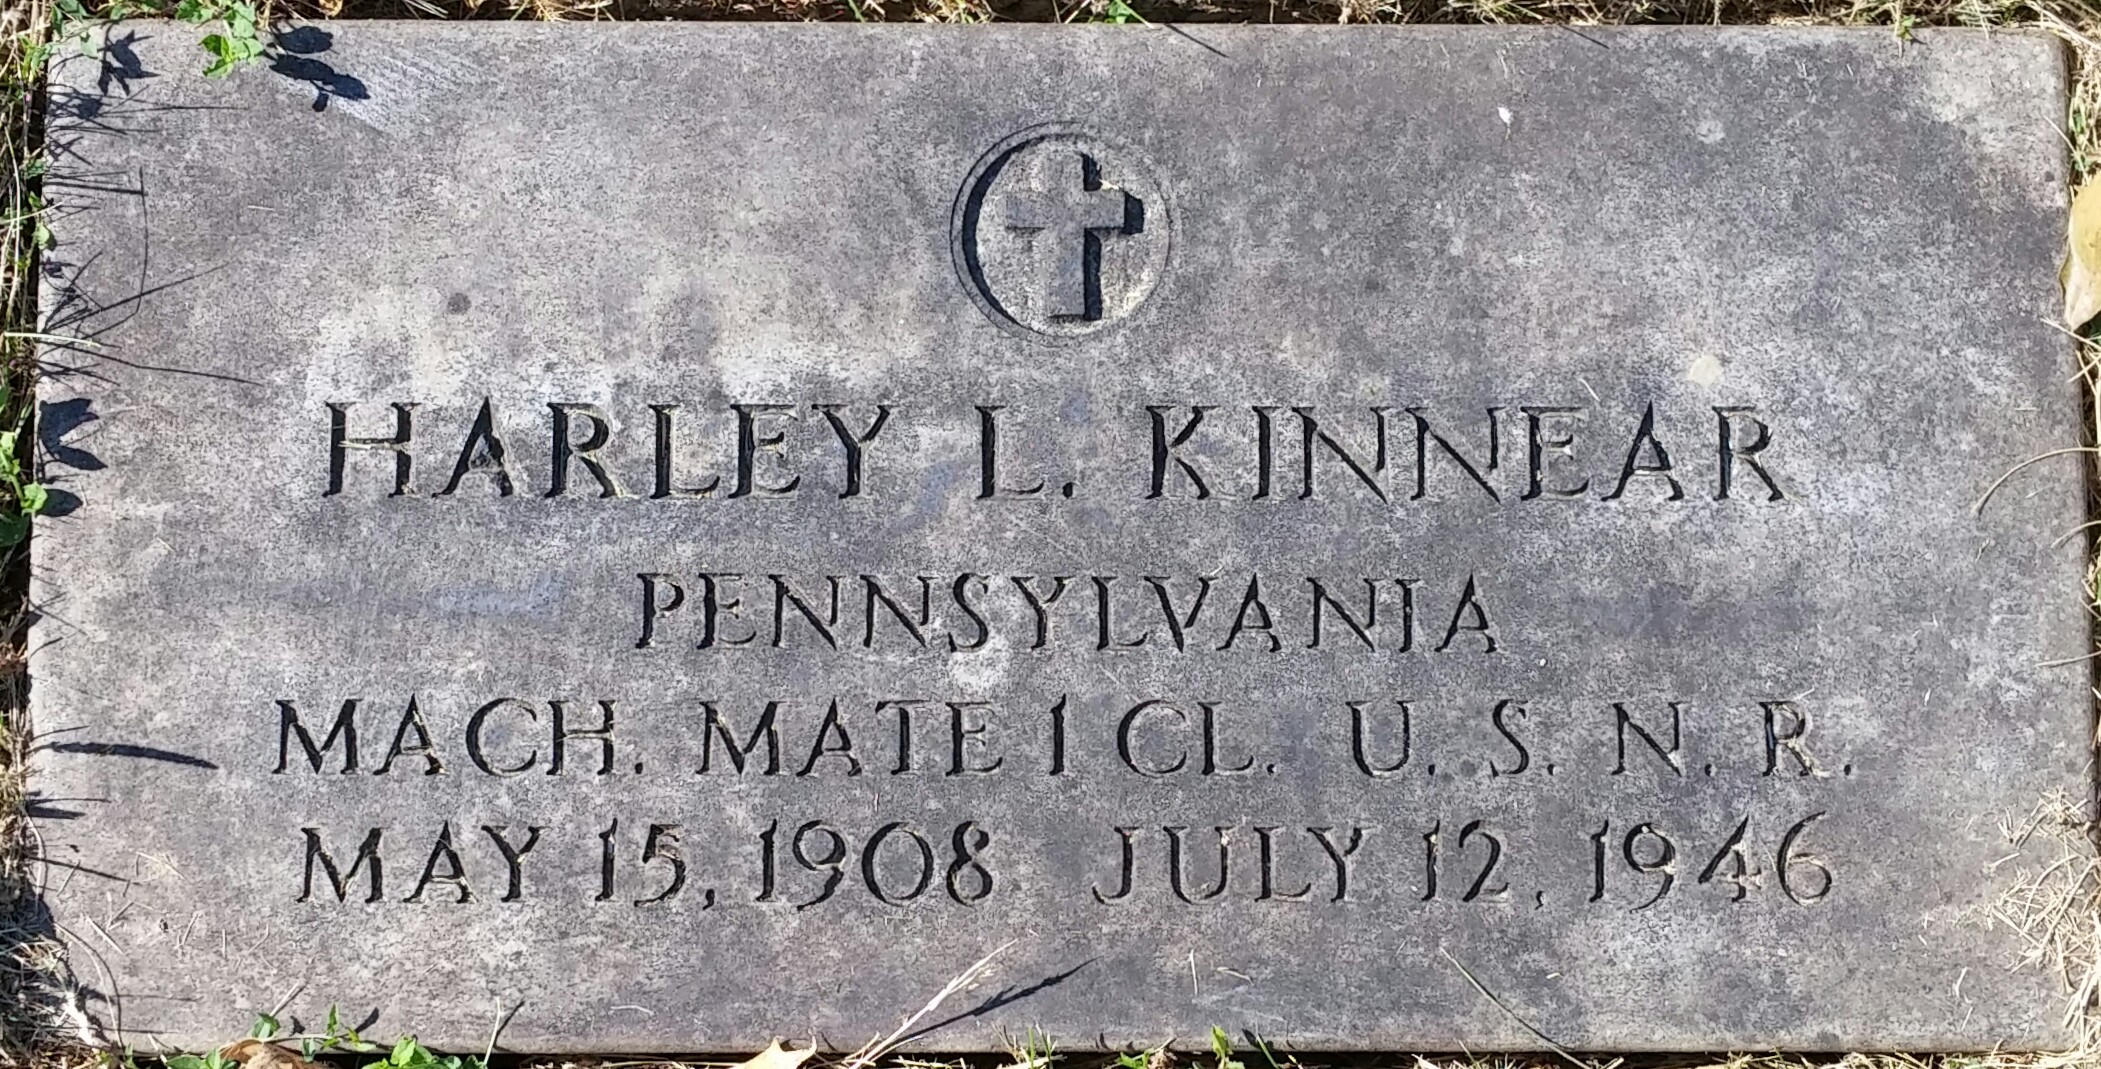 Detective Harley Leroy Kinnear | New York, Chicago and St. Louis Railroad Police Department, Railroad Police